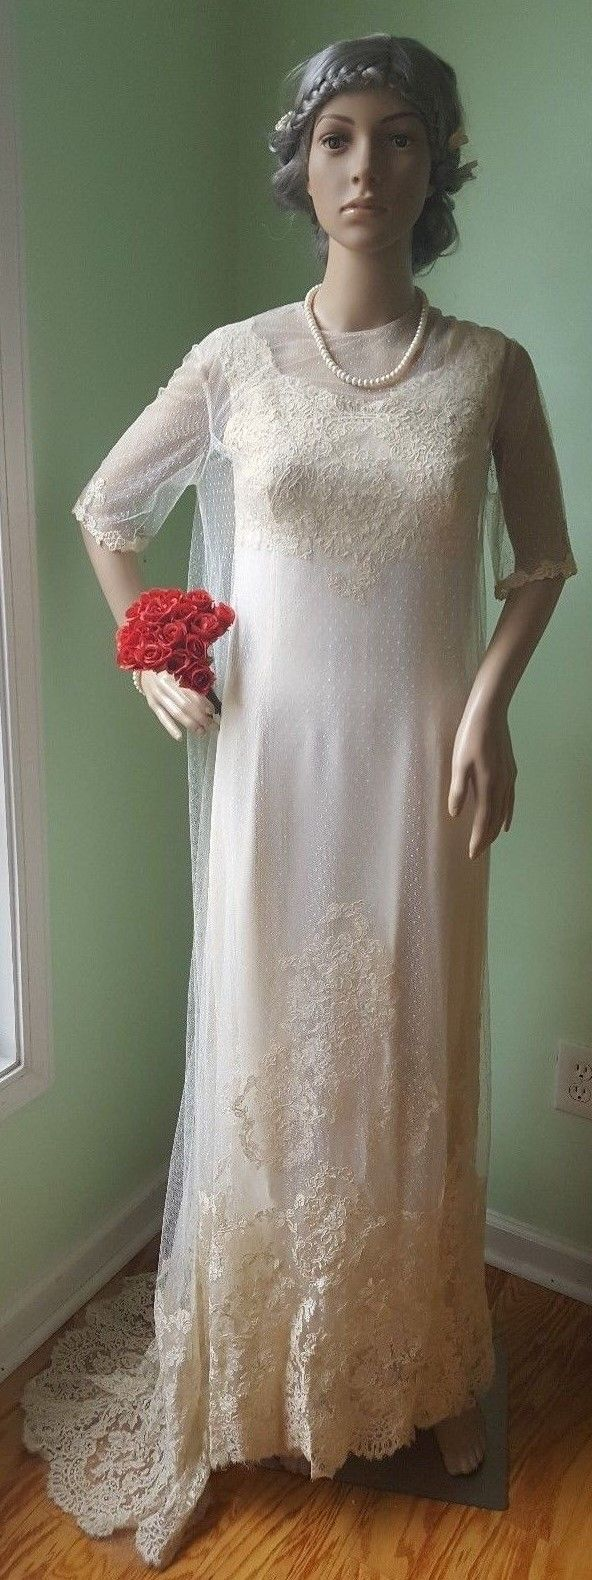 40s wedding dress  VTG Unique Tulle Lace Wedding Dress with Cape from the usus